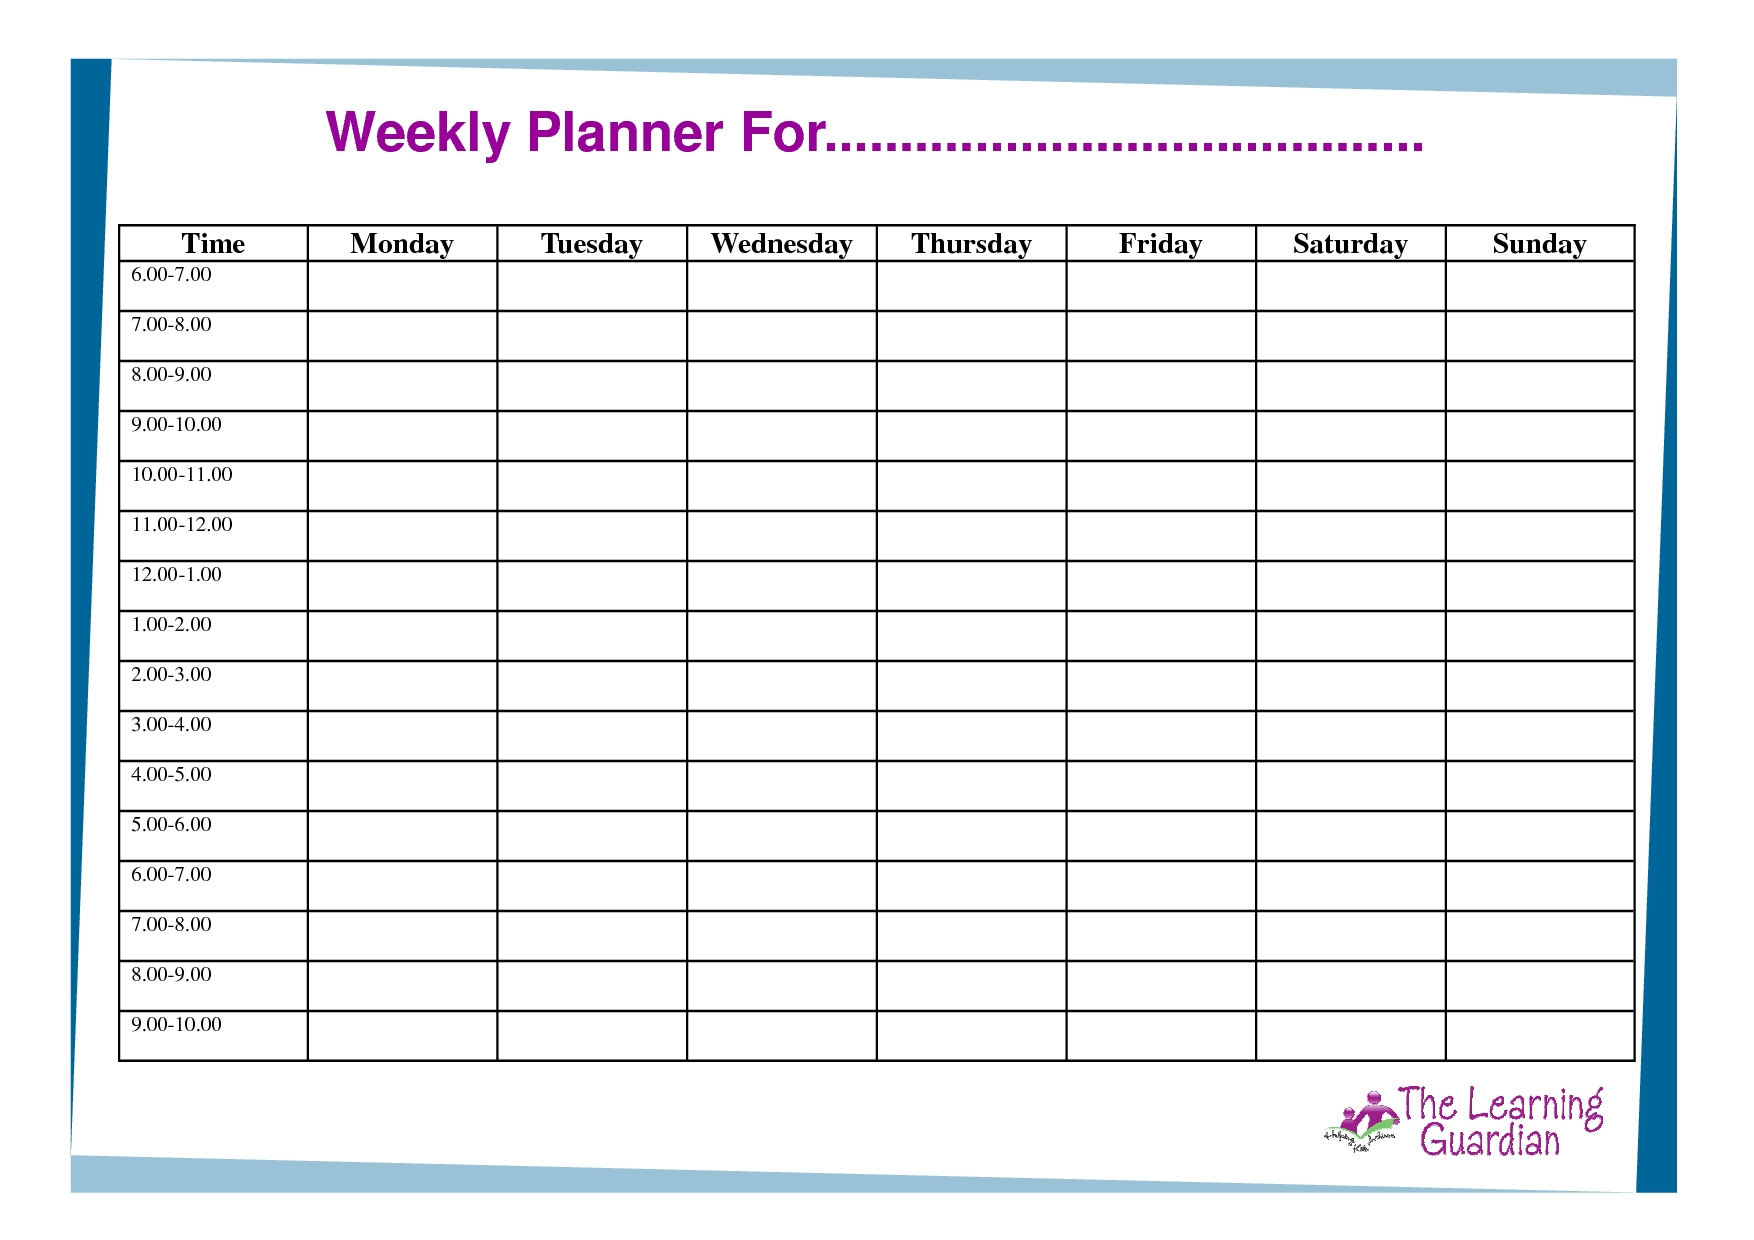 Free Printable Weekly Calendar Templates | Weekly Planner For Time in Blank Calendar Printable With Times